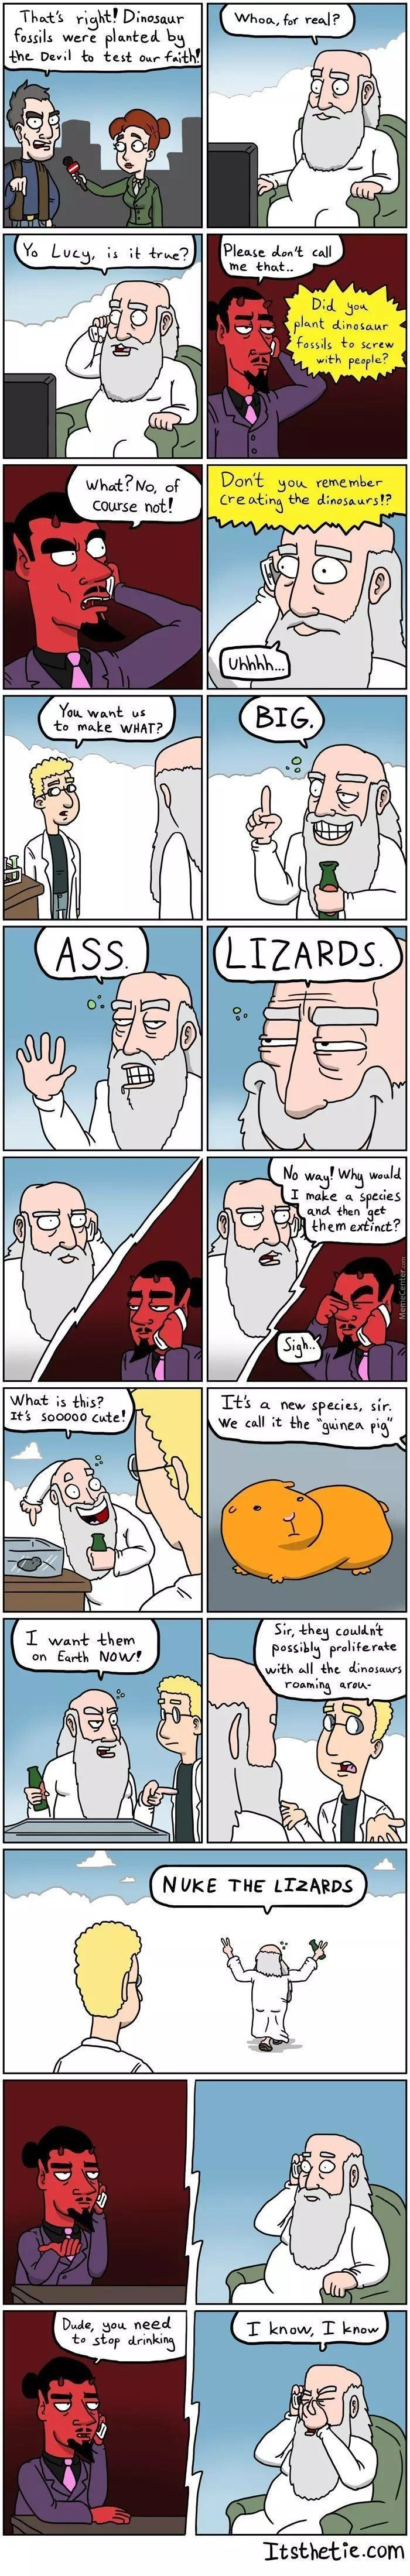 funny-web-comics-gods-drinking-problem